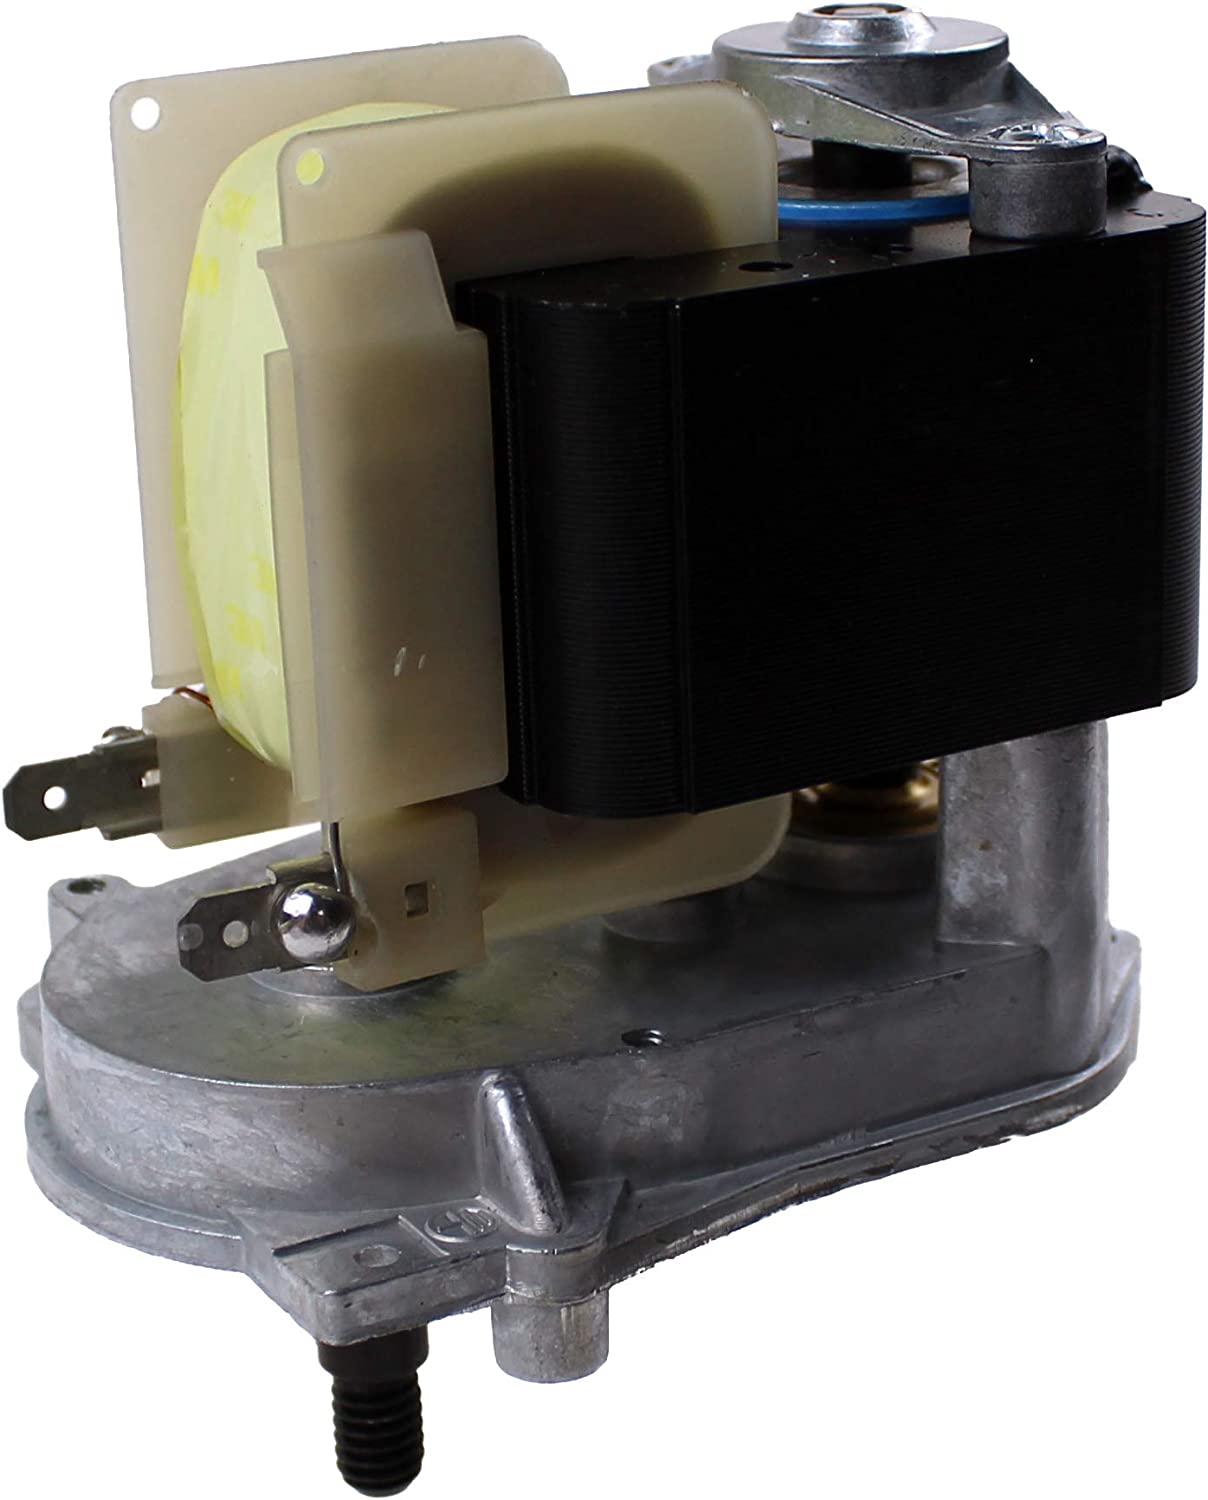 Supplying Demand 242221501 Freezer Ice Maker Auger Motor Replaces 241676201 Compatible With Frigidaire …